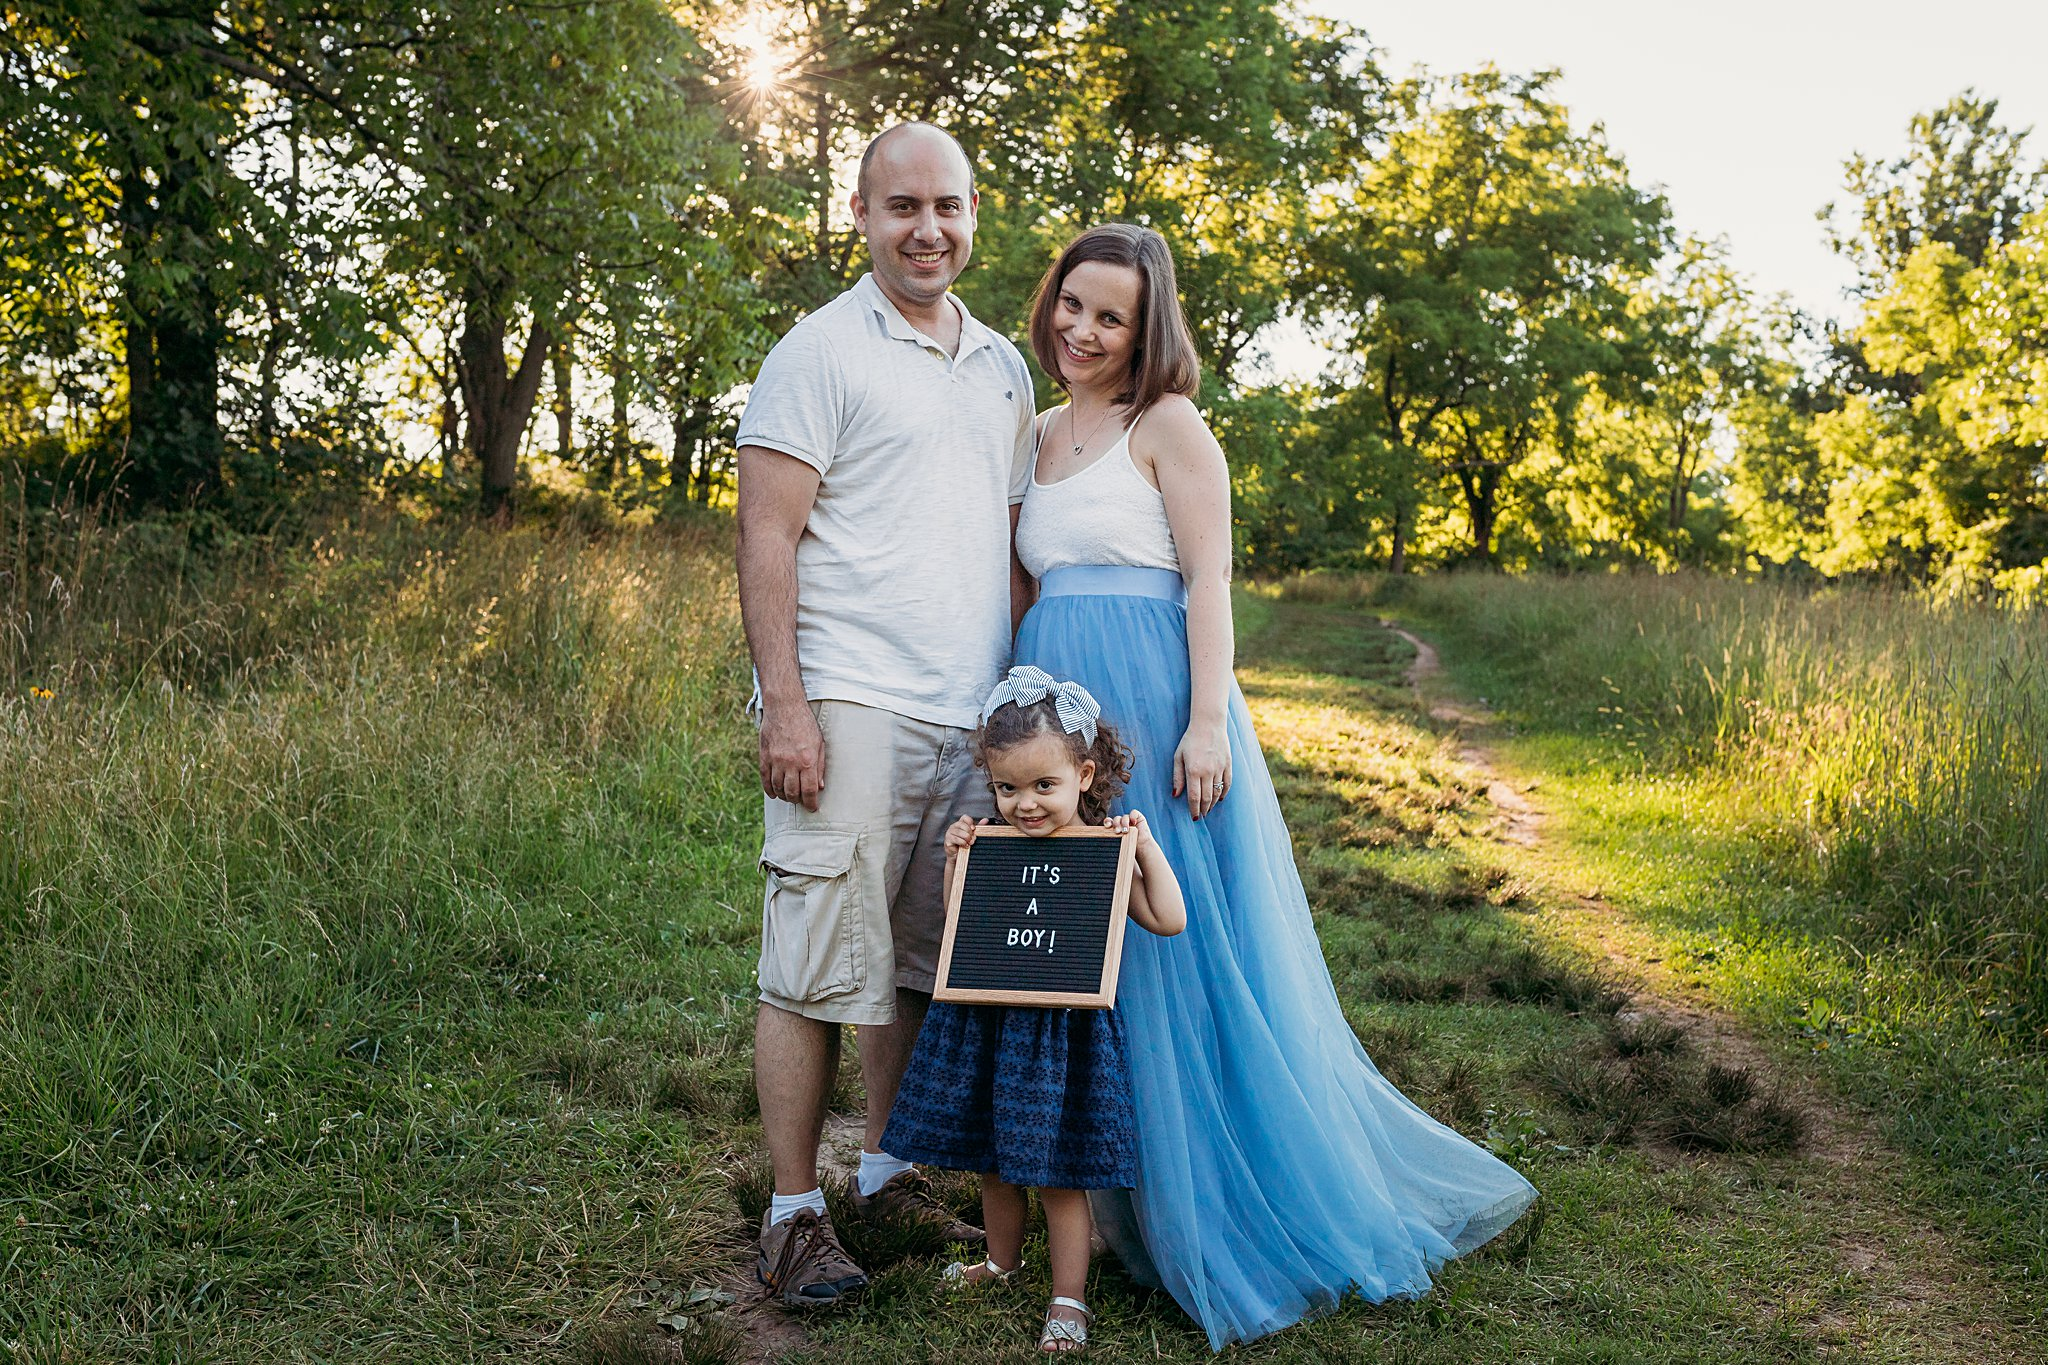 Maternity photographer in Bucks County, PA